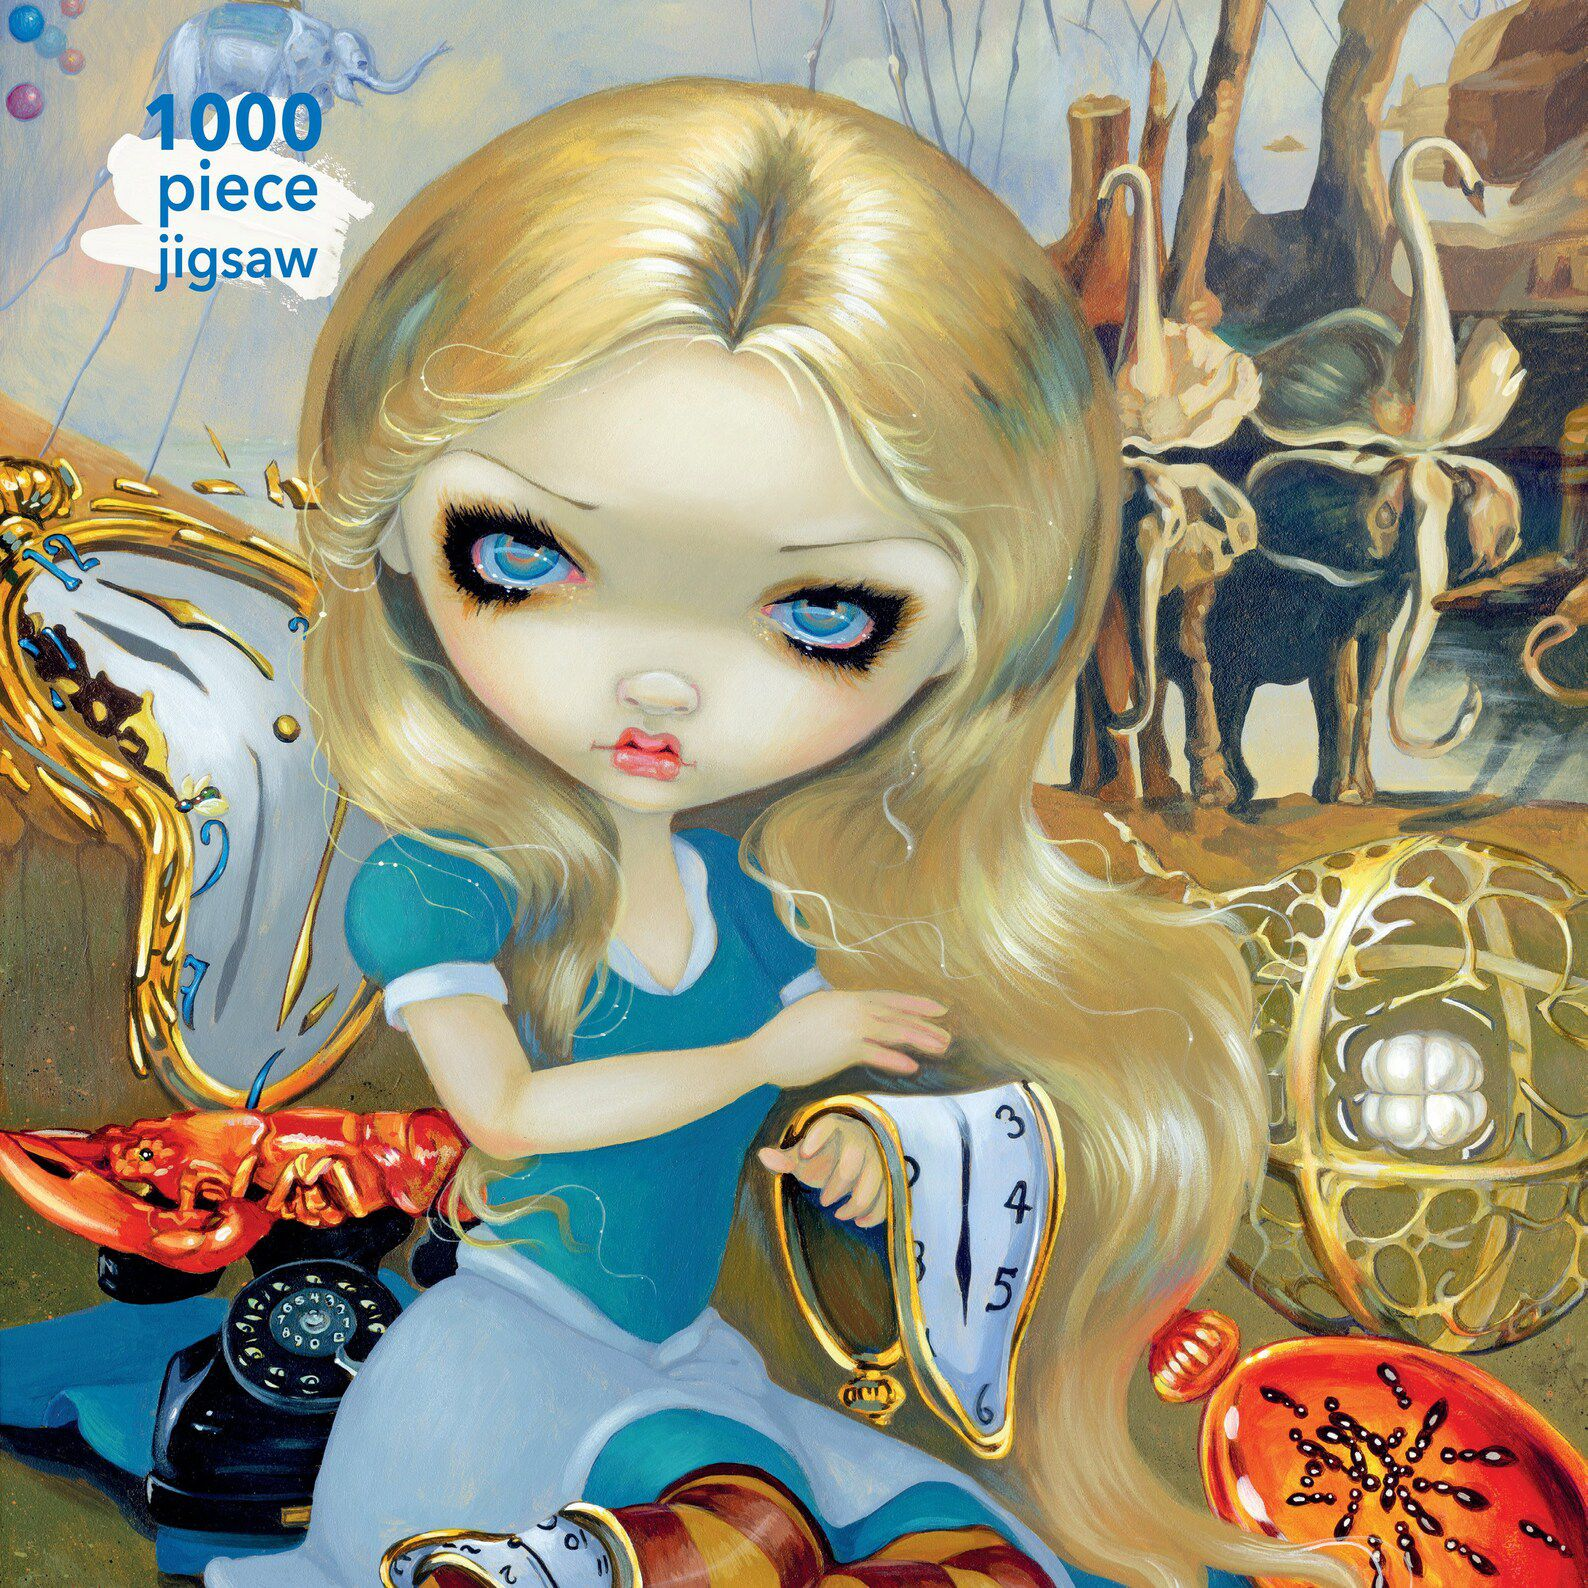 puzzle features a version of Alice holding a melting clock in the style of Salvador Dali